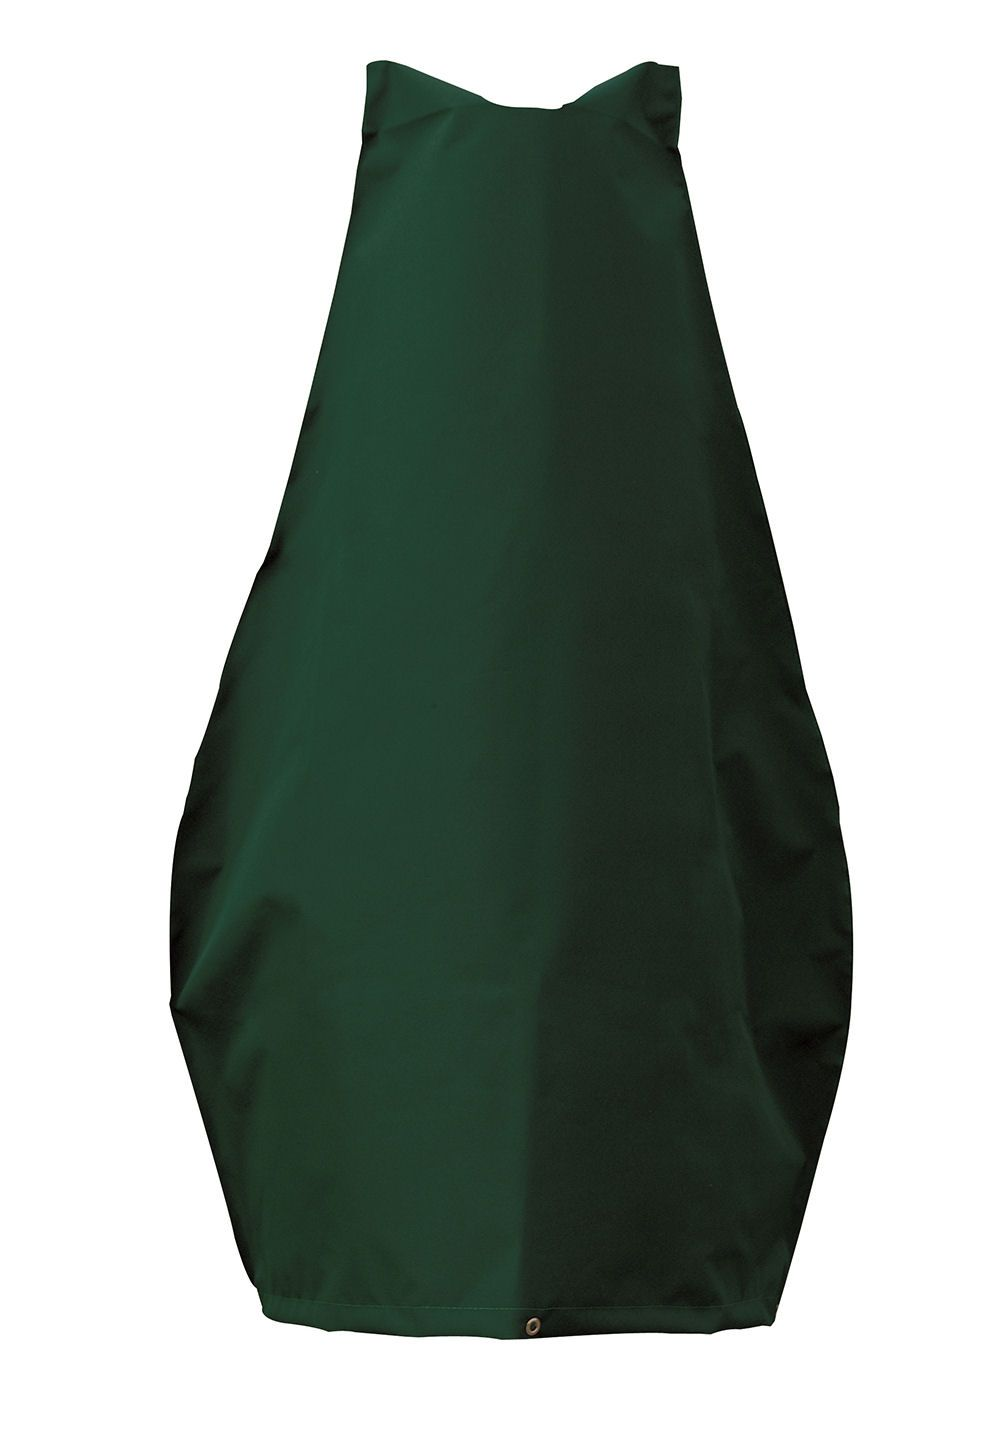 Bosmere Medium Chimenea Chiminea Cover 84cm H C750